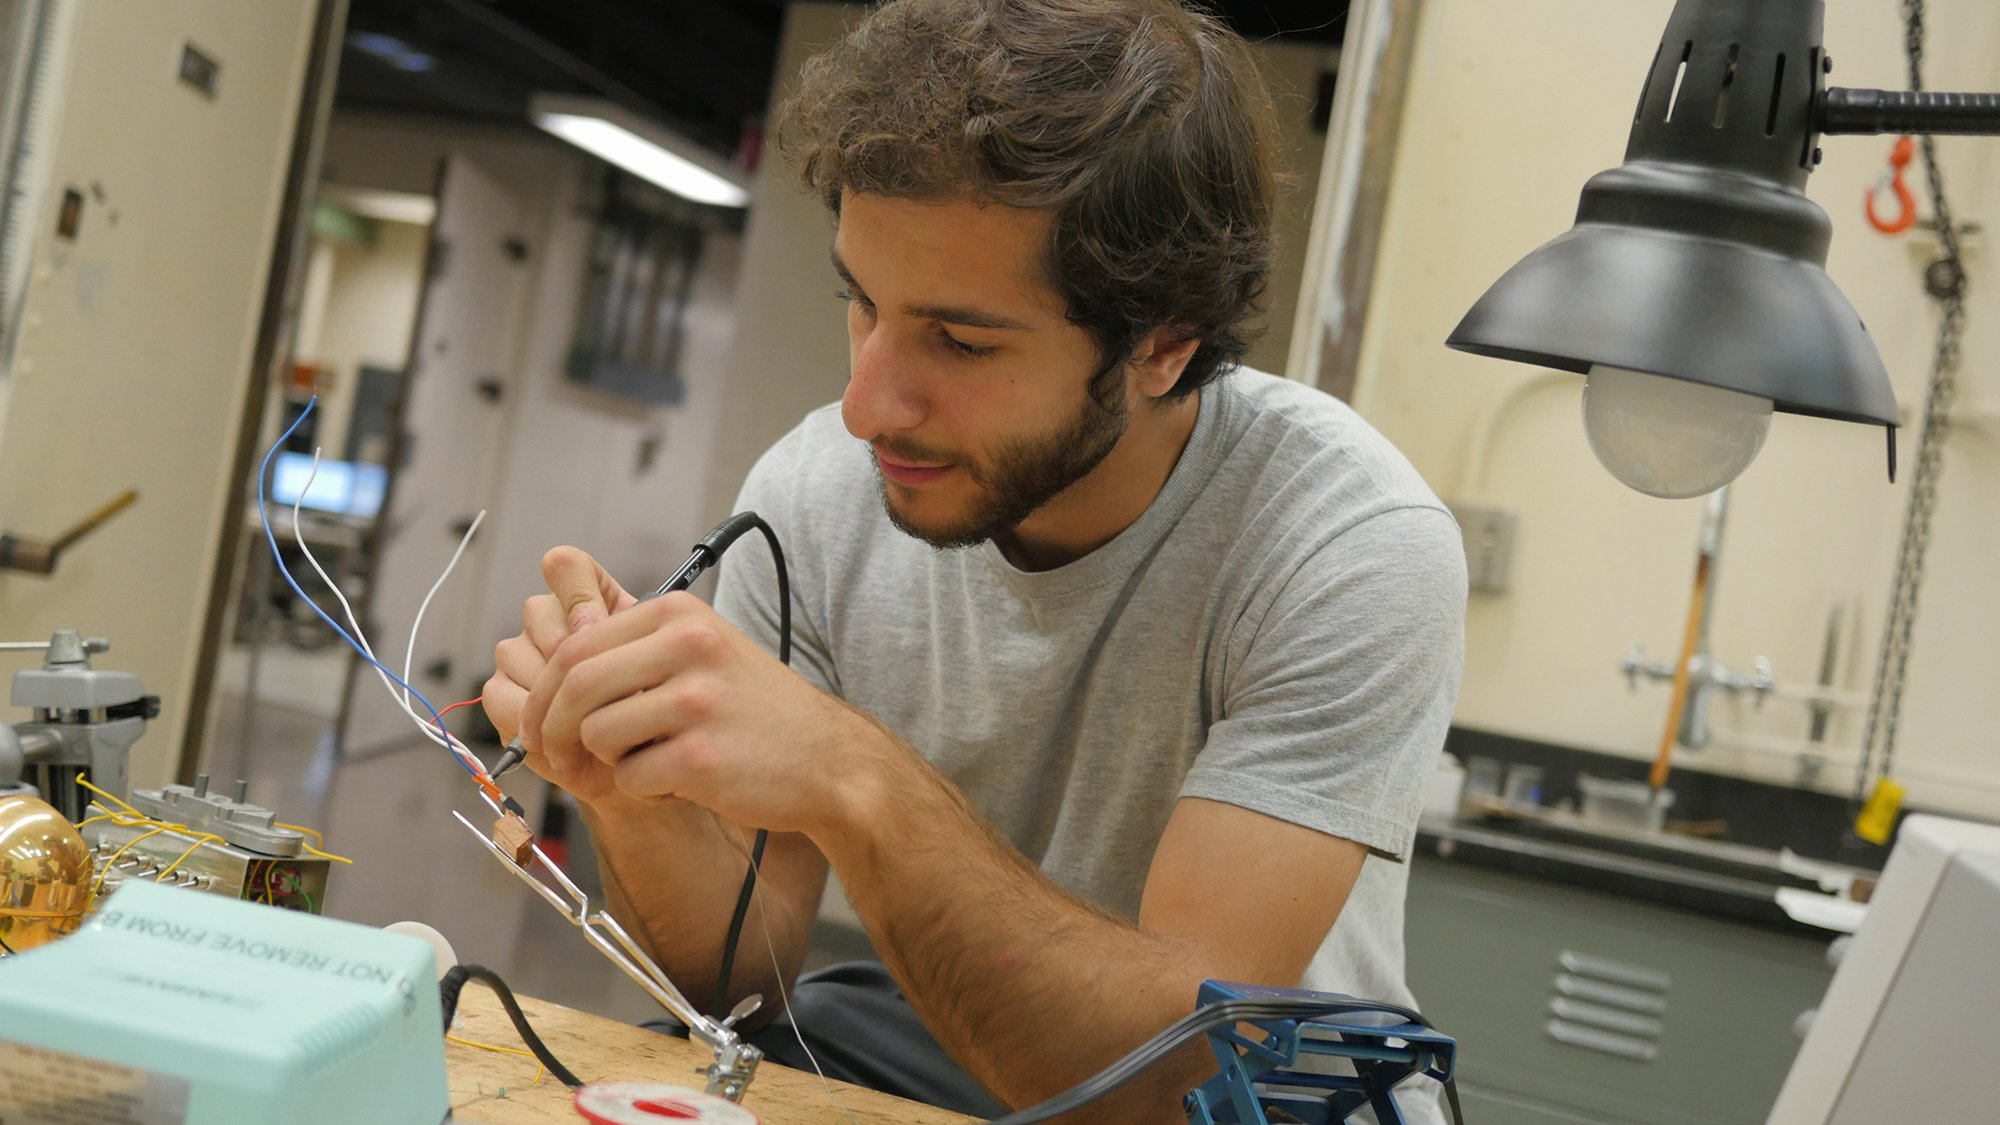 student soldering wires